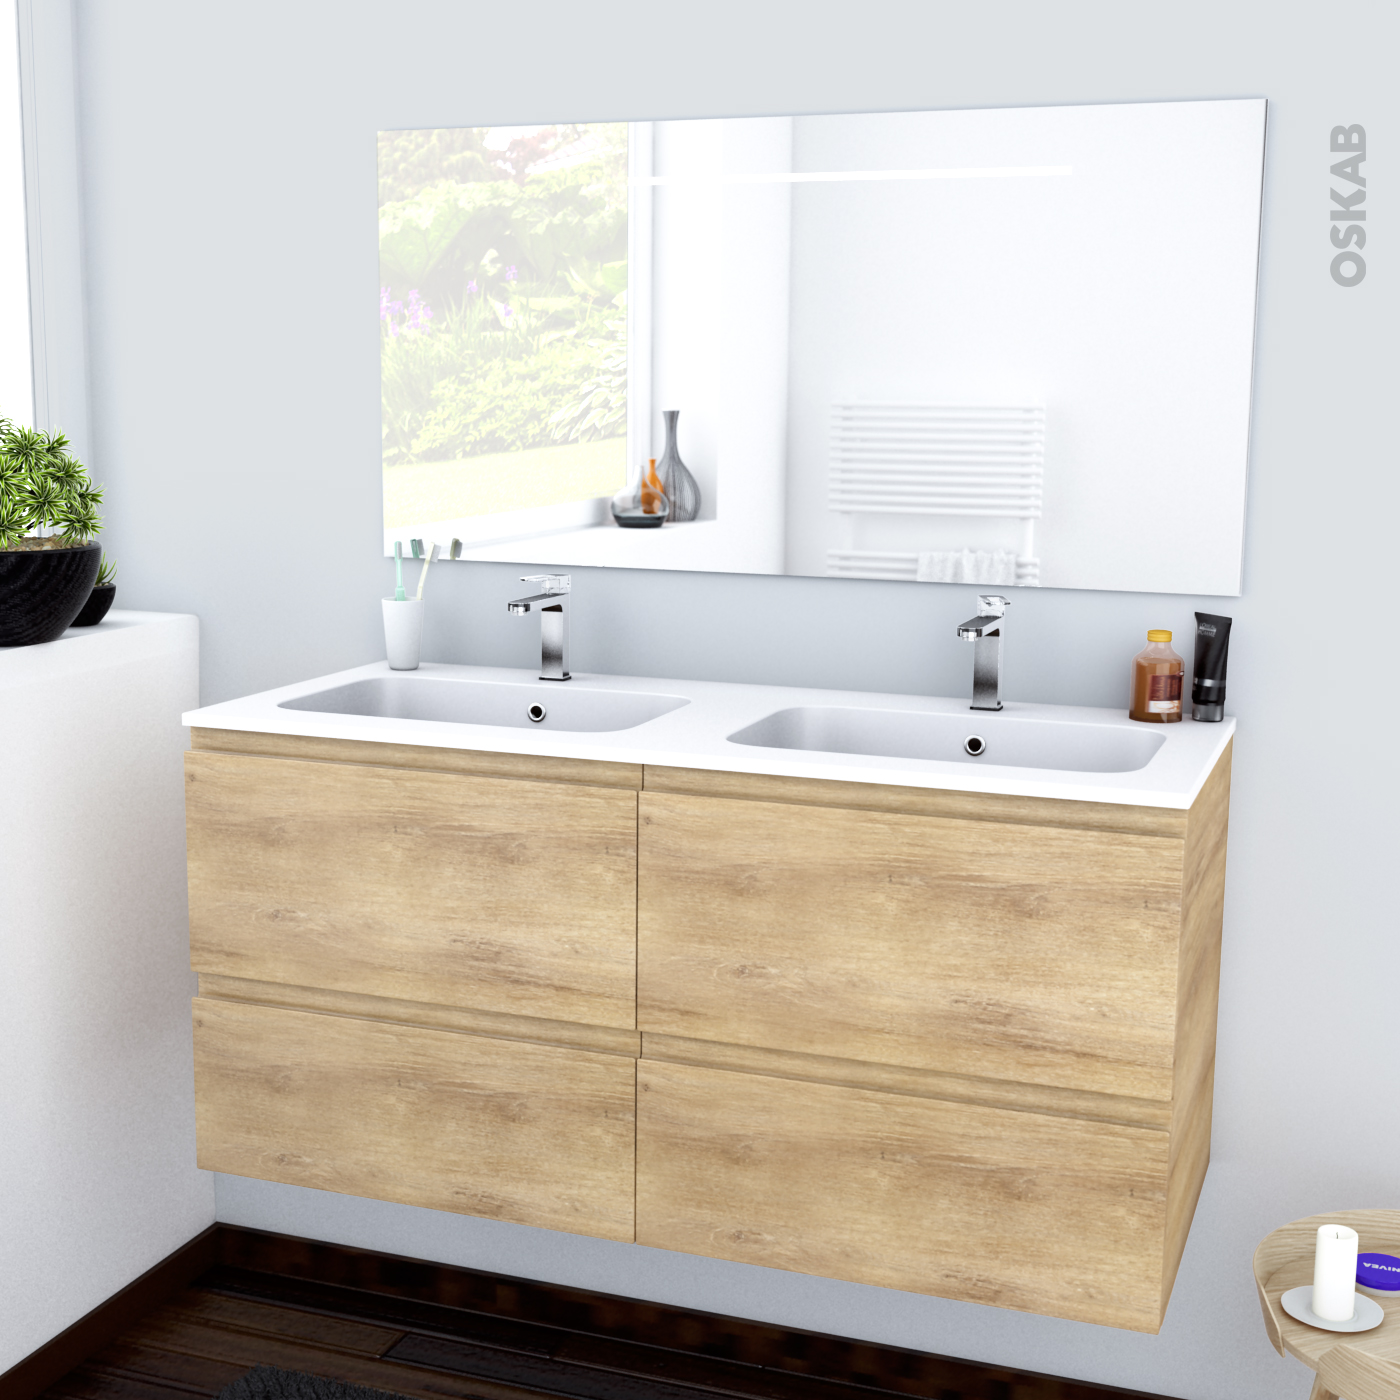 Lavabo double vasque retro hudson reed ensemble meuble de for Meuble salle de bain double vasque